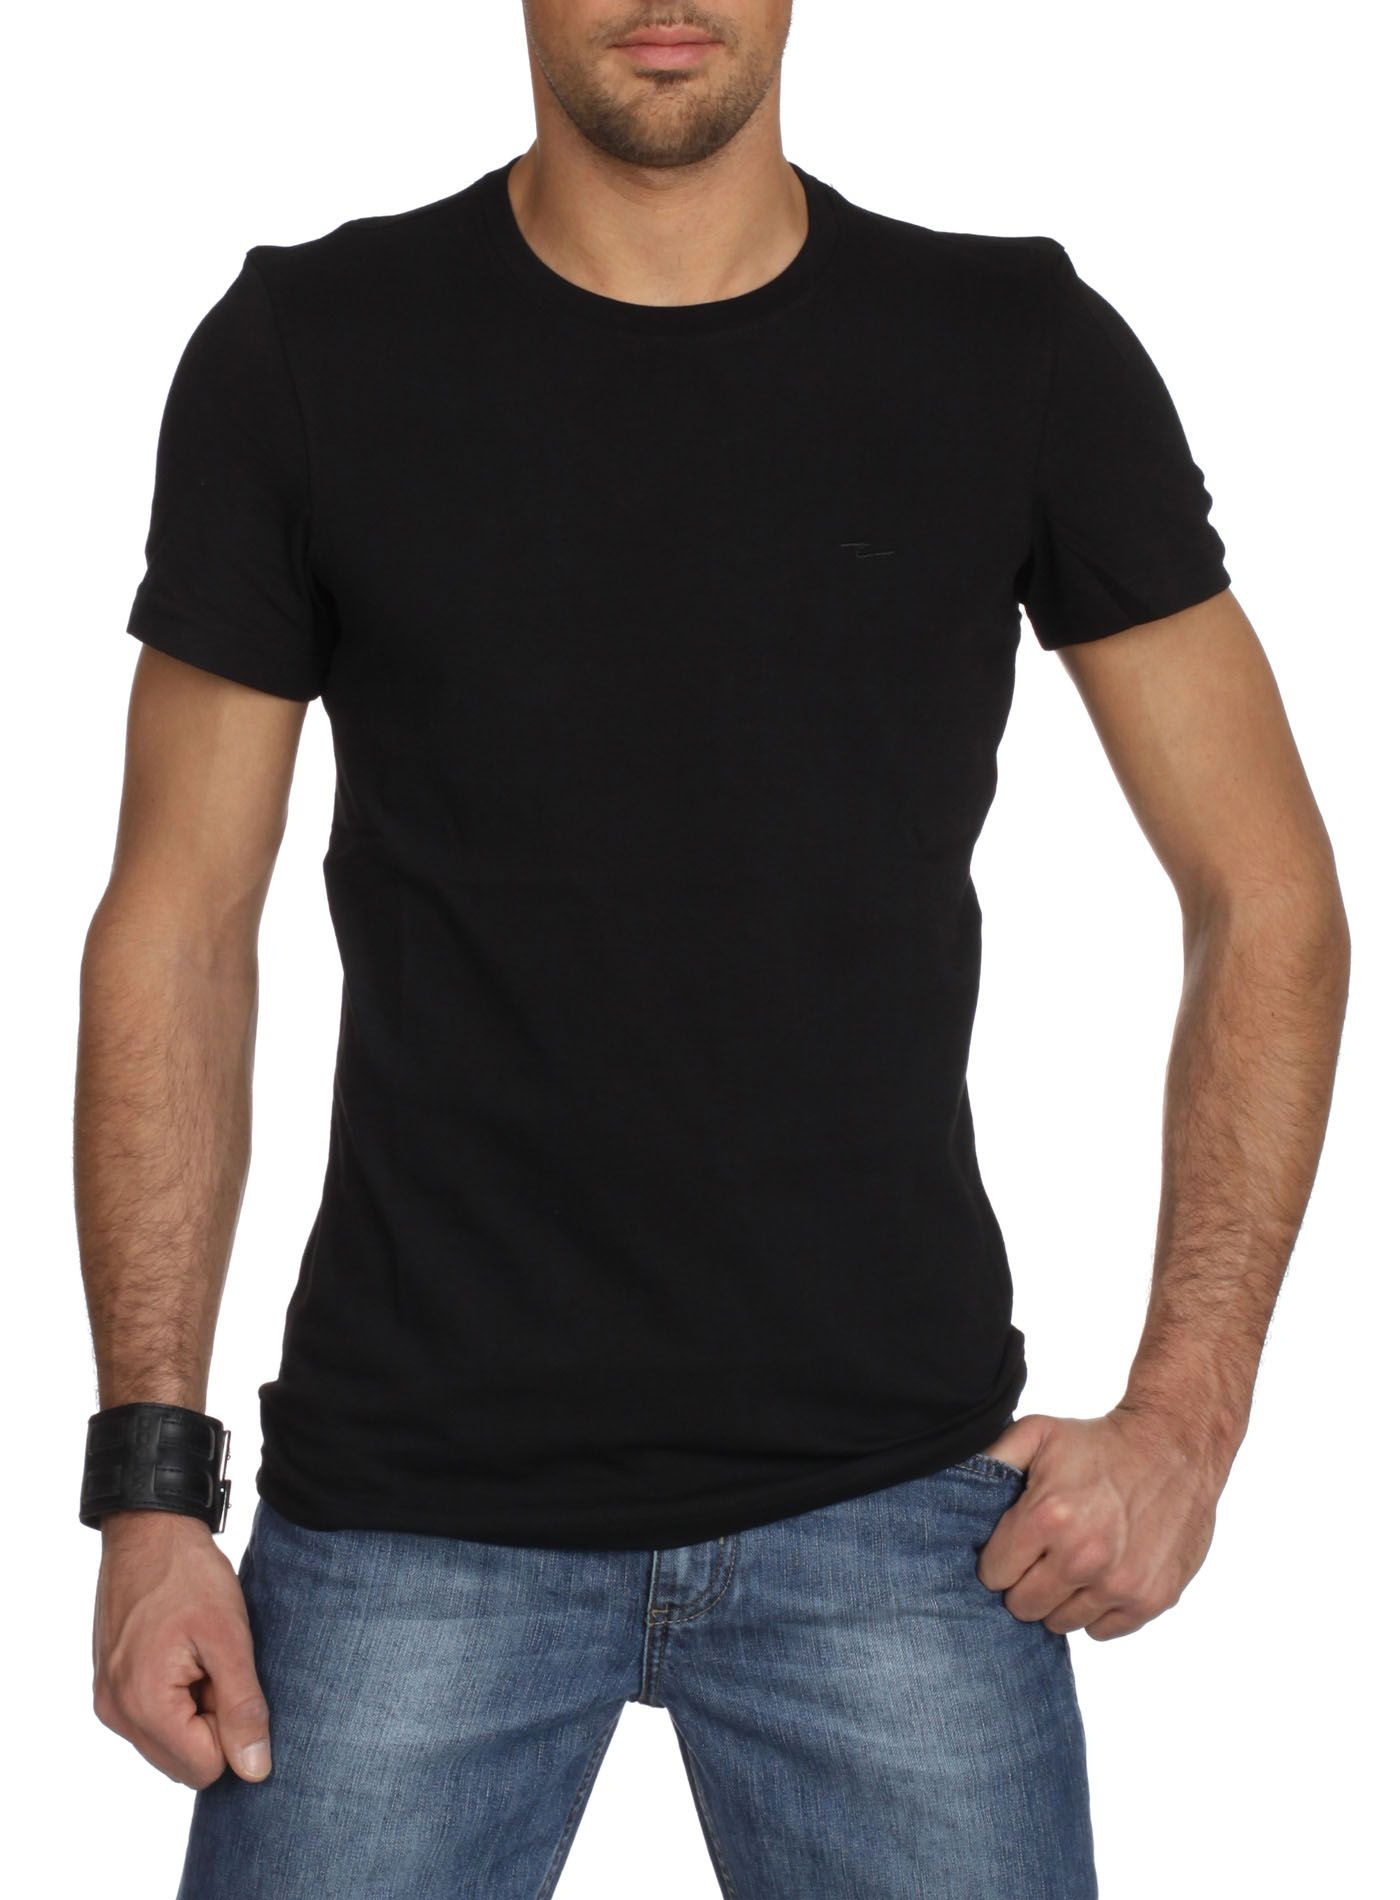 Wholesale Blank T Shirts For Men Men 39 S T Shirt Buy Blank